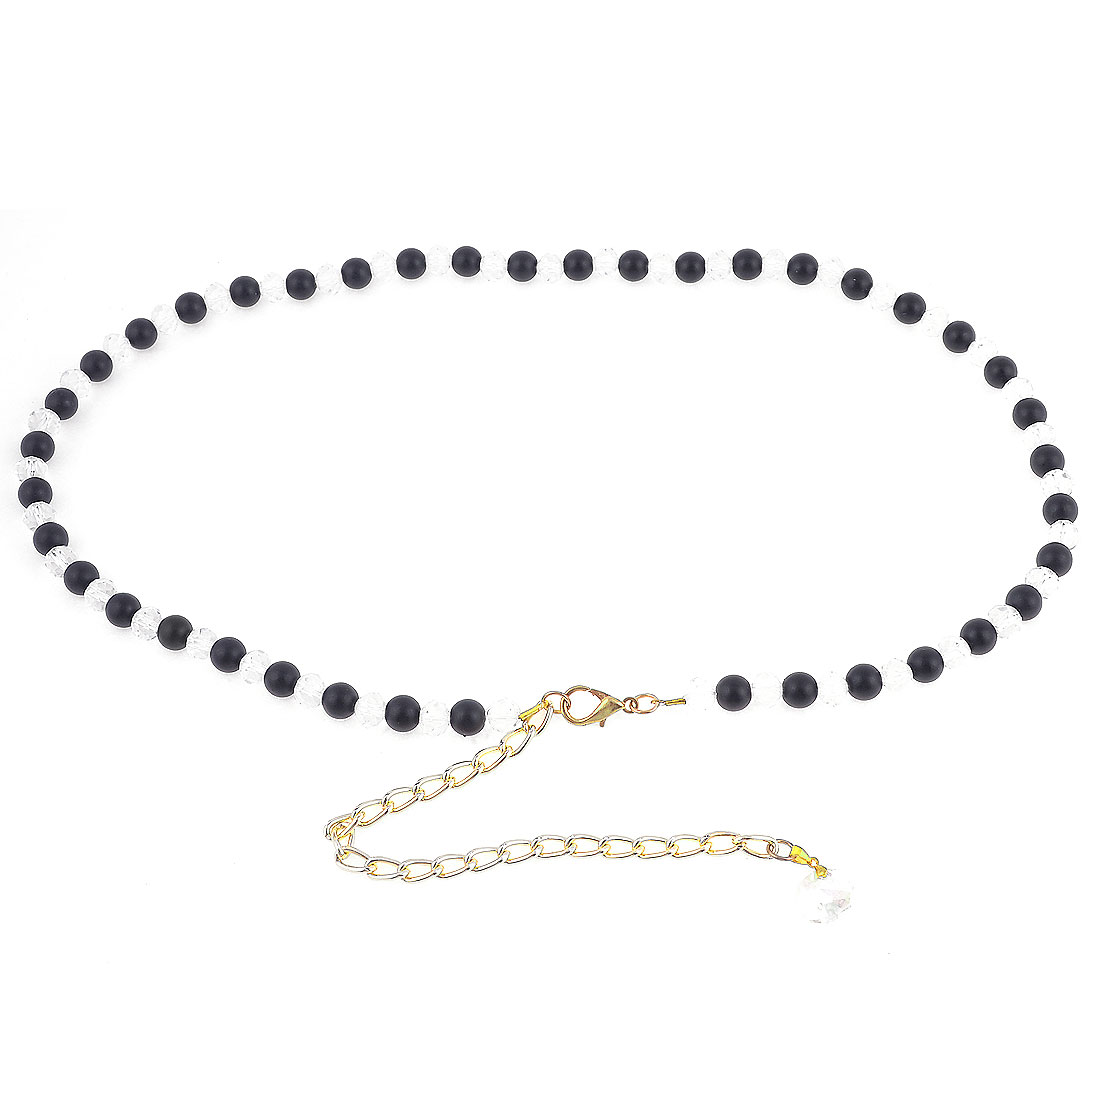 Women Lobster Clasp Plastic Beads Decor Adjustable Chain Waist Belt Band Black